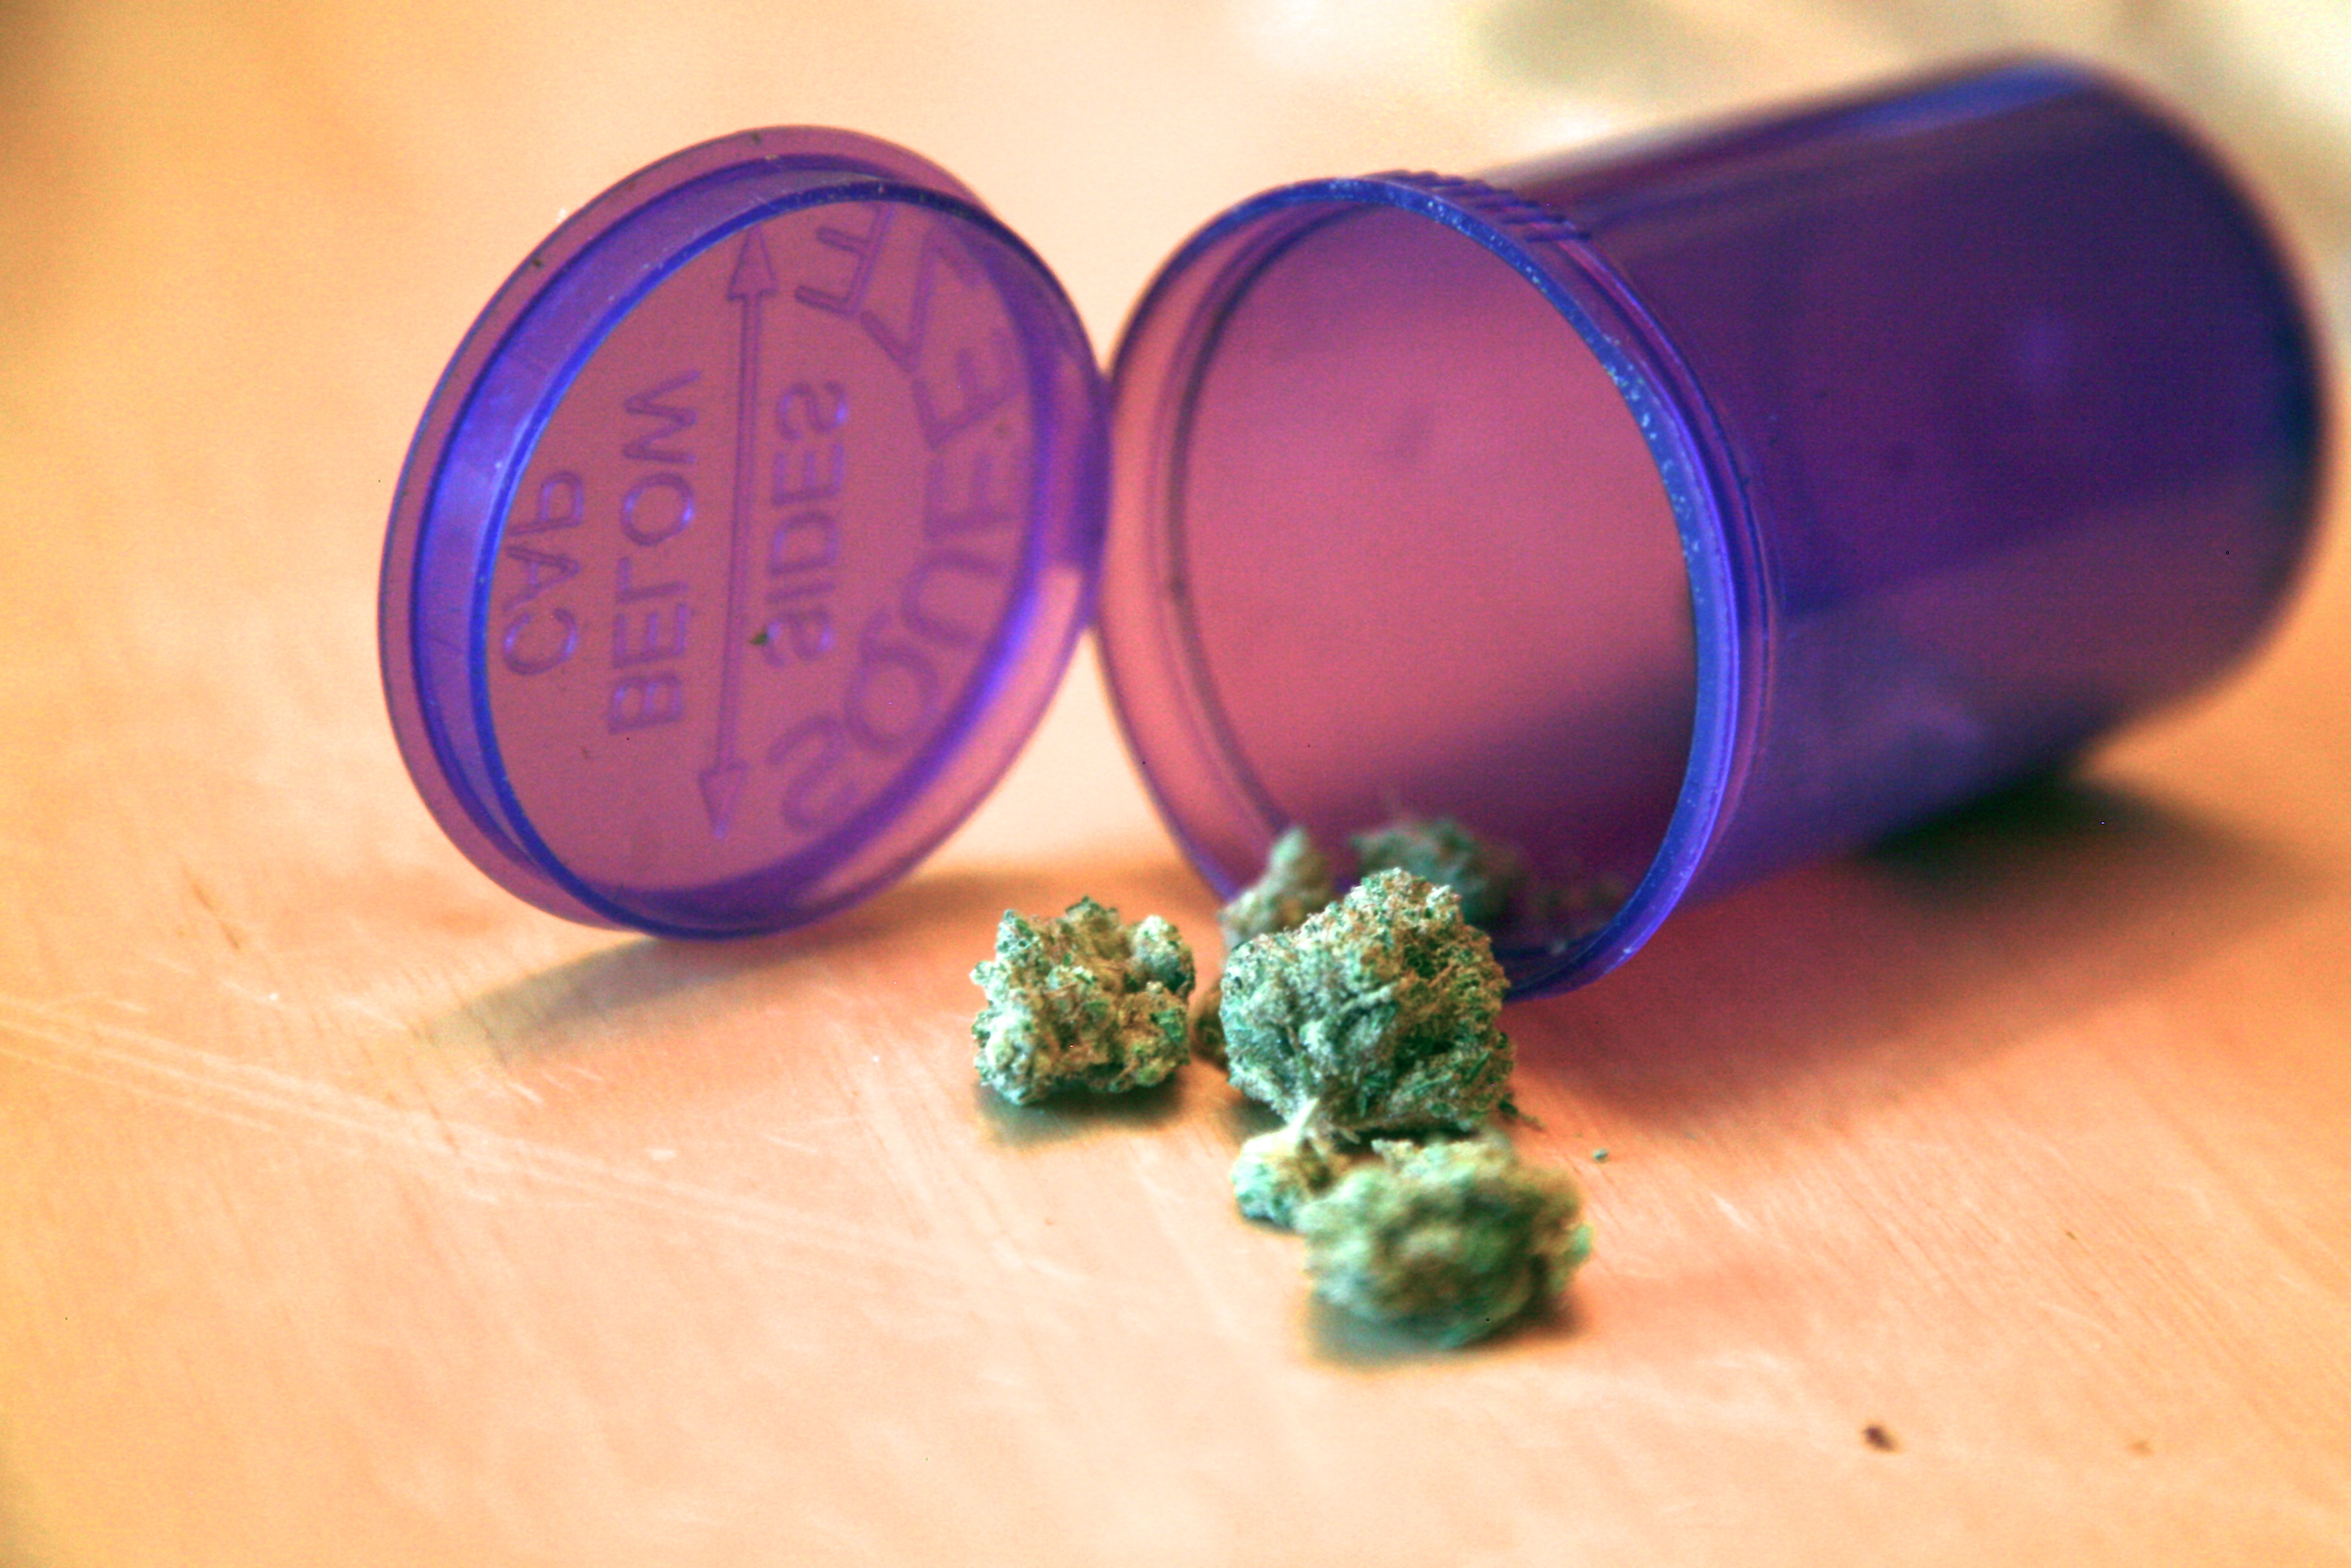 A container of marijuana sits on a table. (Nate Bruzdzinski)